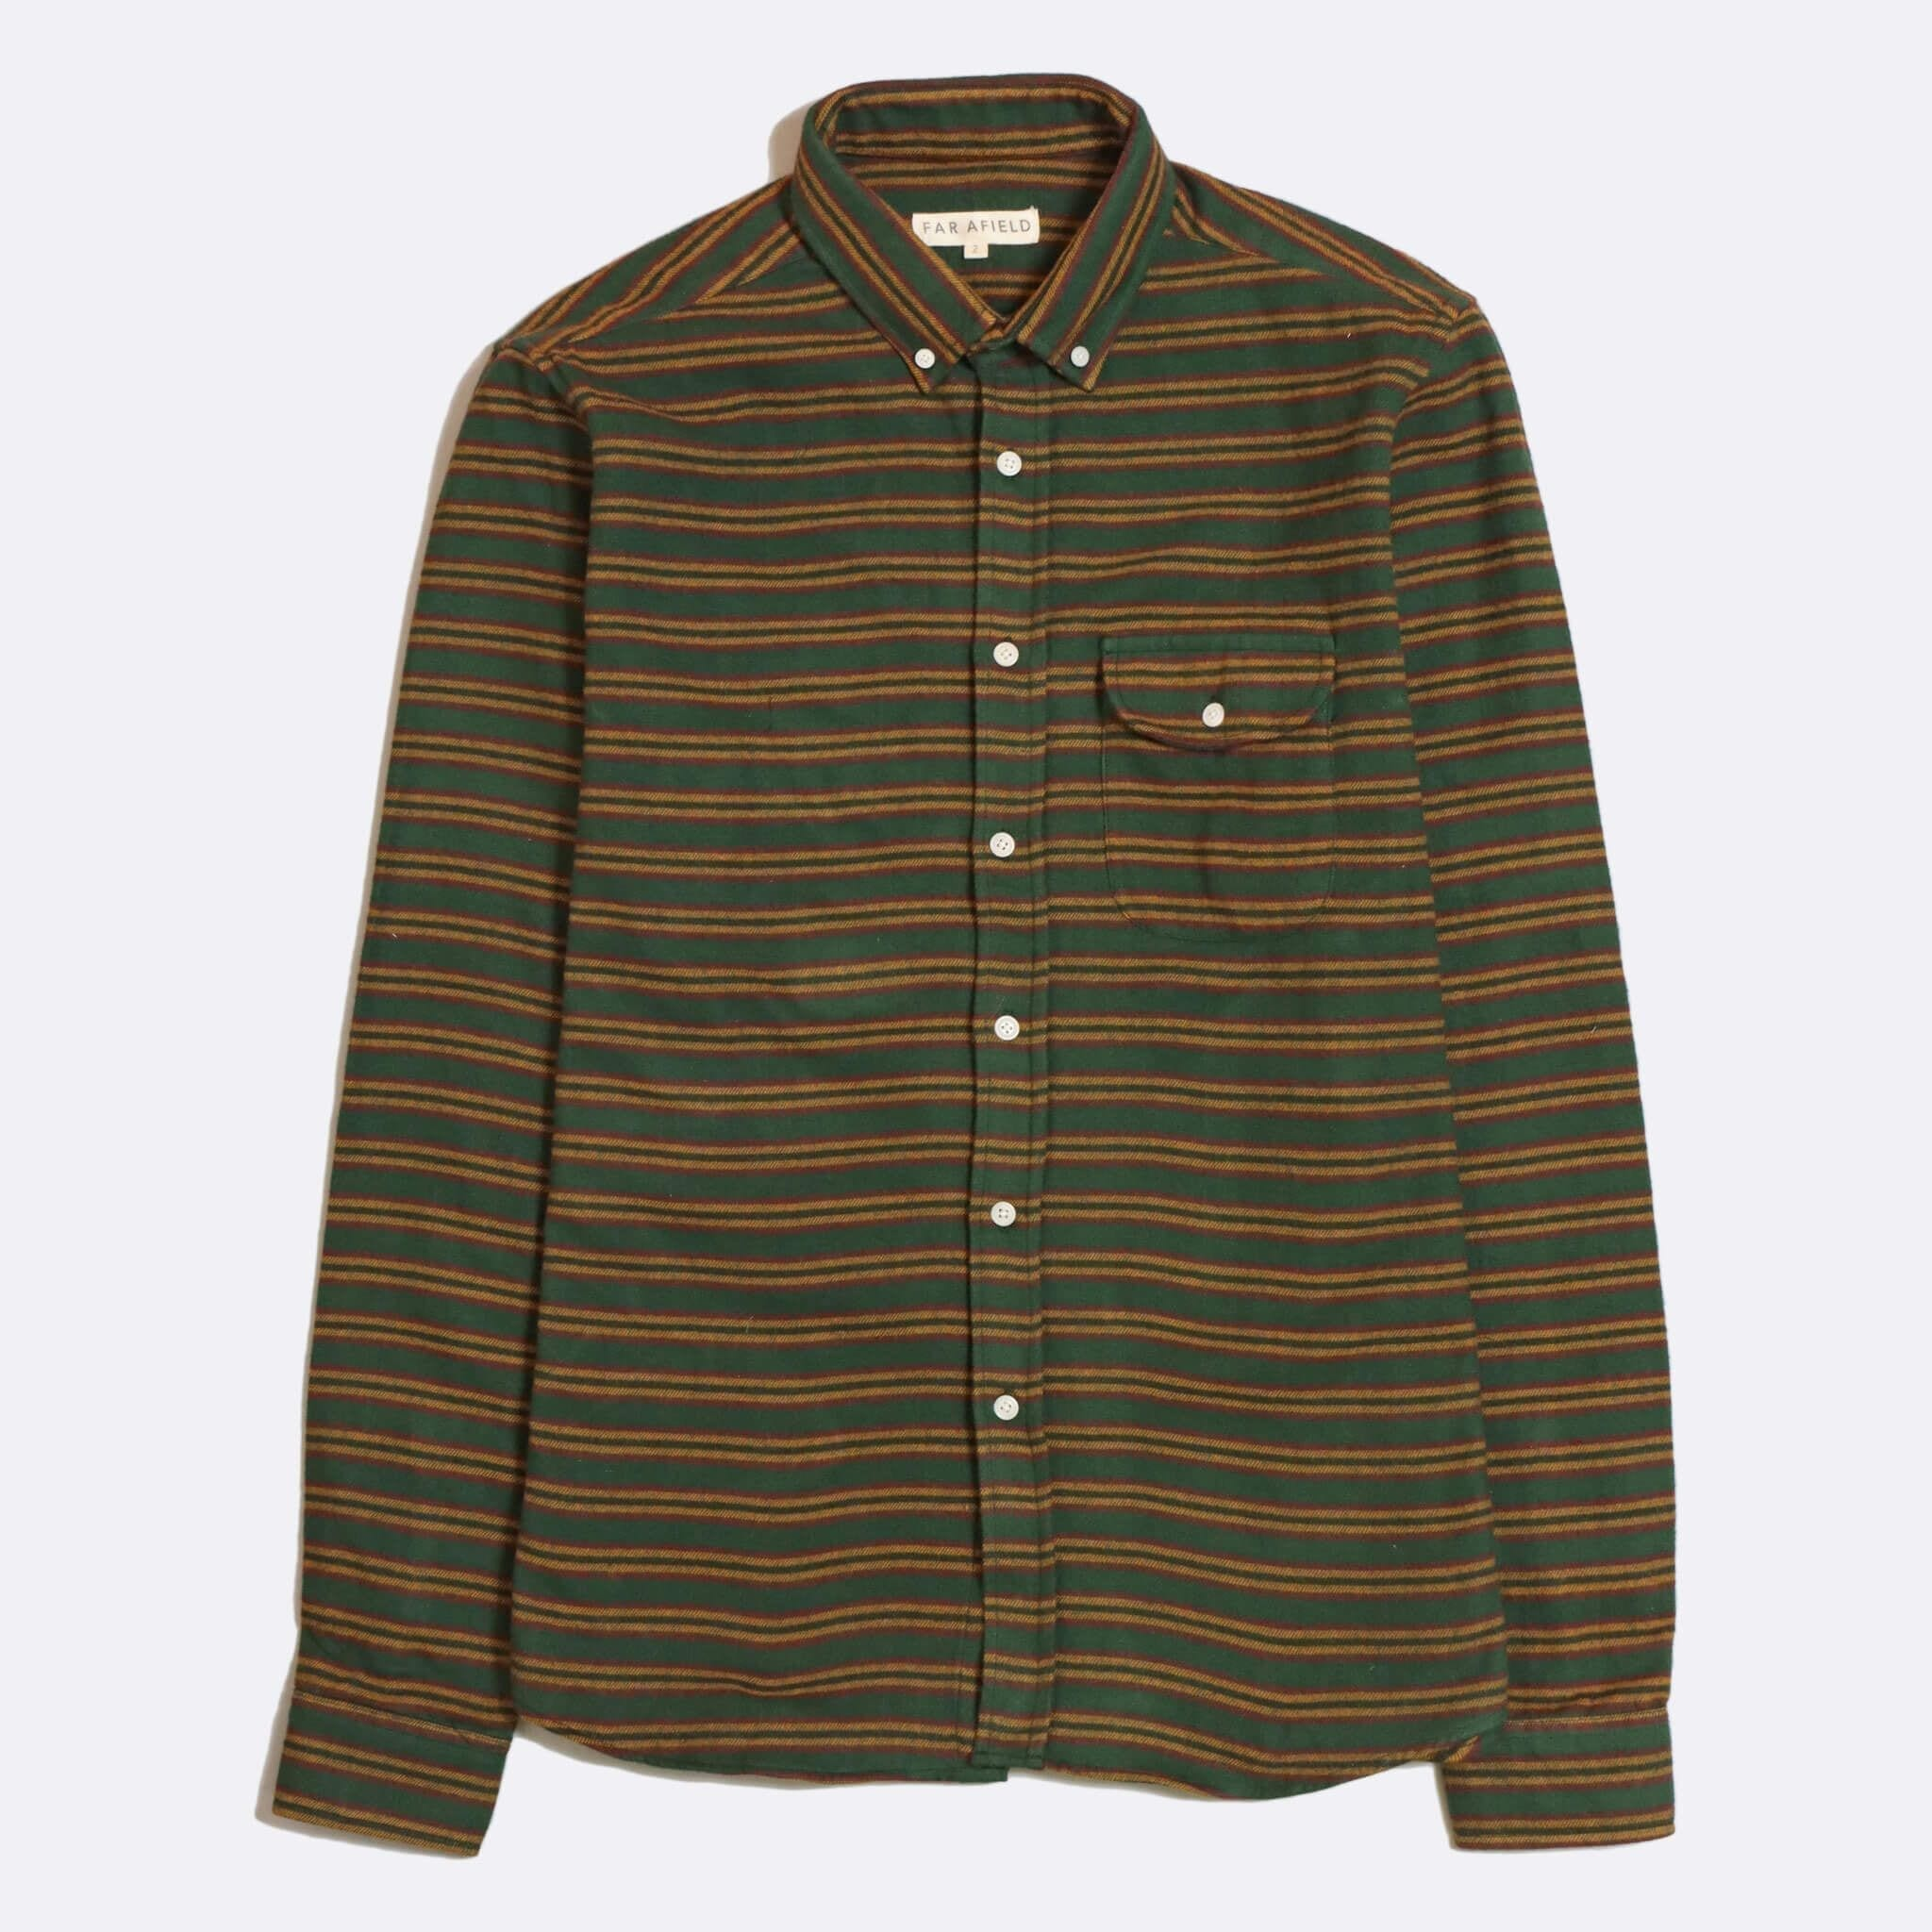 Far Afield Larry Long Sleeve Shirt a Green BCI Cotton Fabric/Cotton Flannel Work Lumberjack Stripe Casual